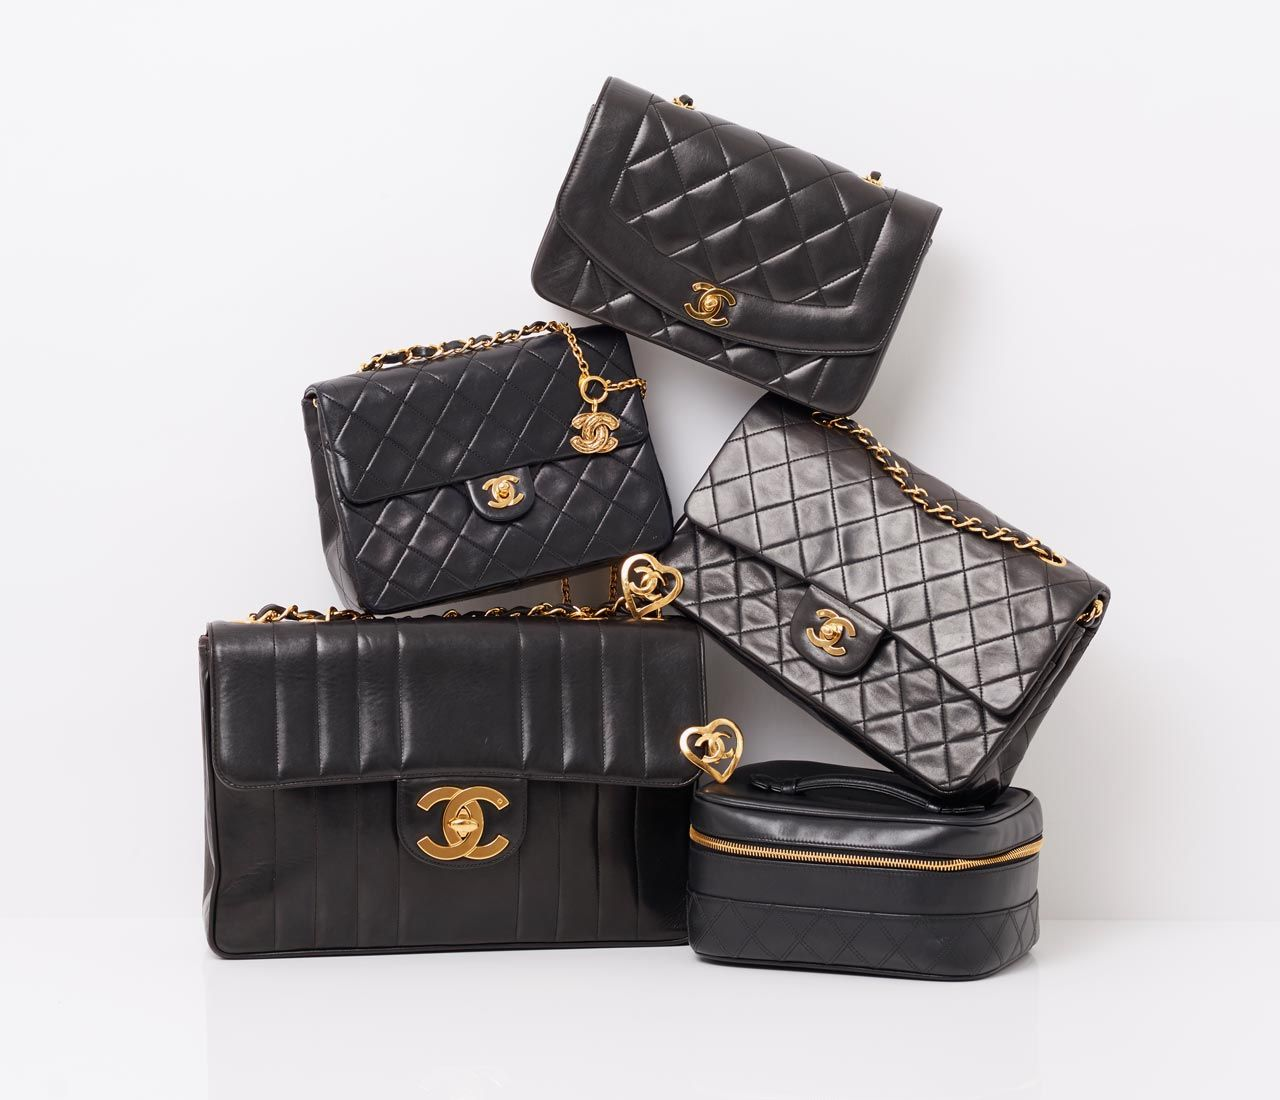 replica bottega veneta handbags wallet benefit now account